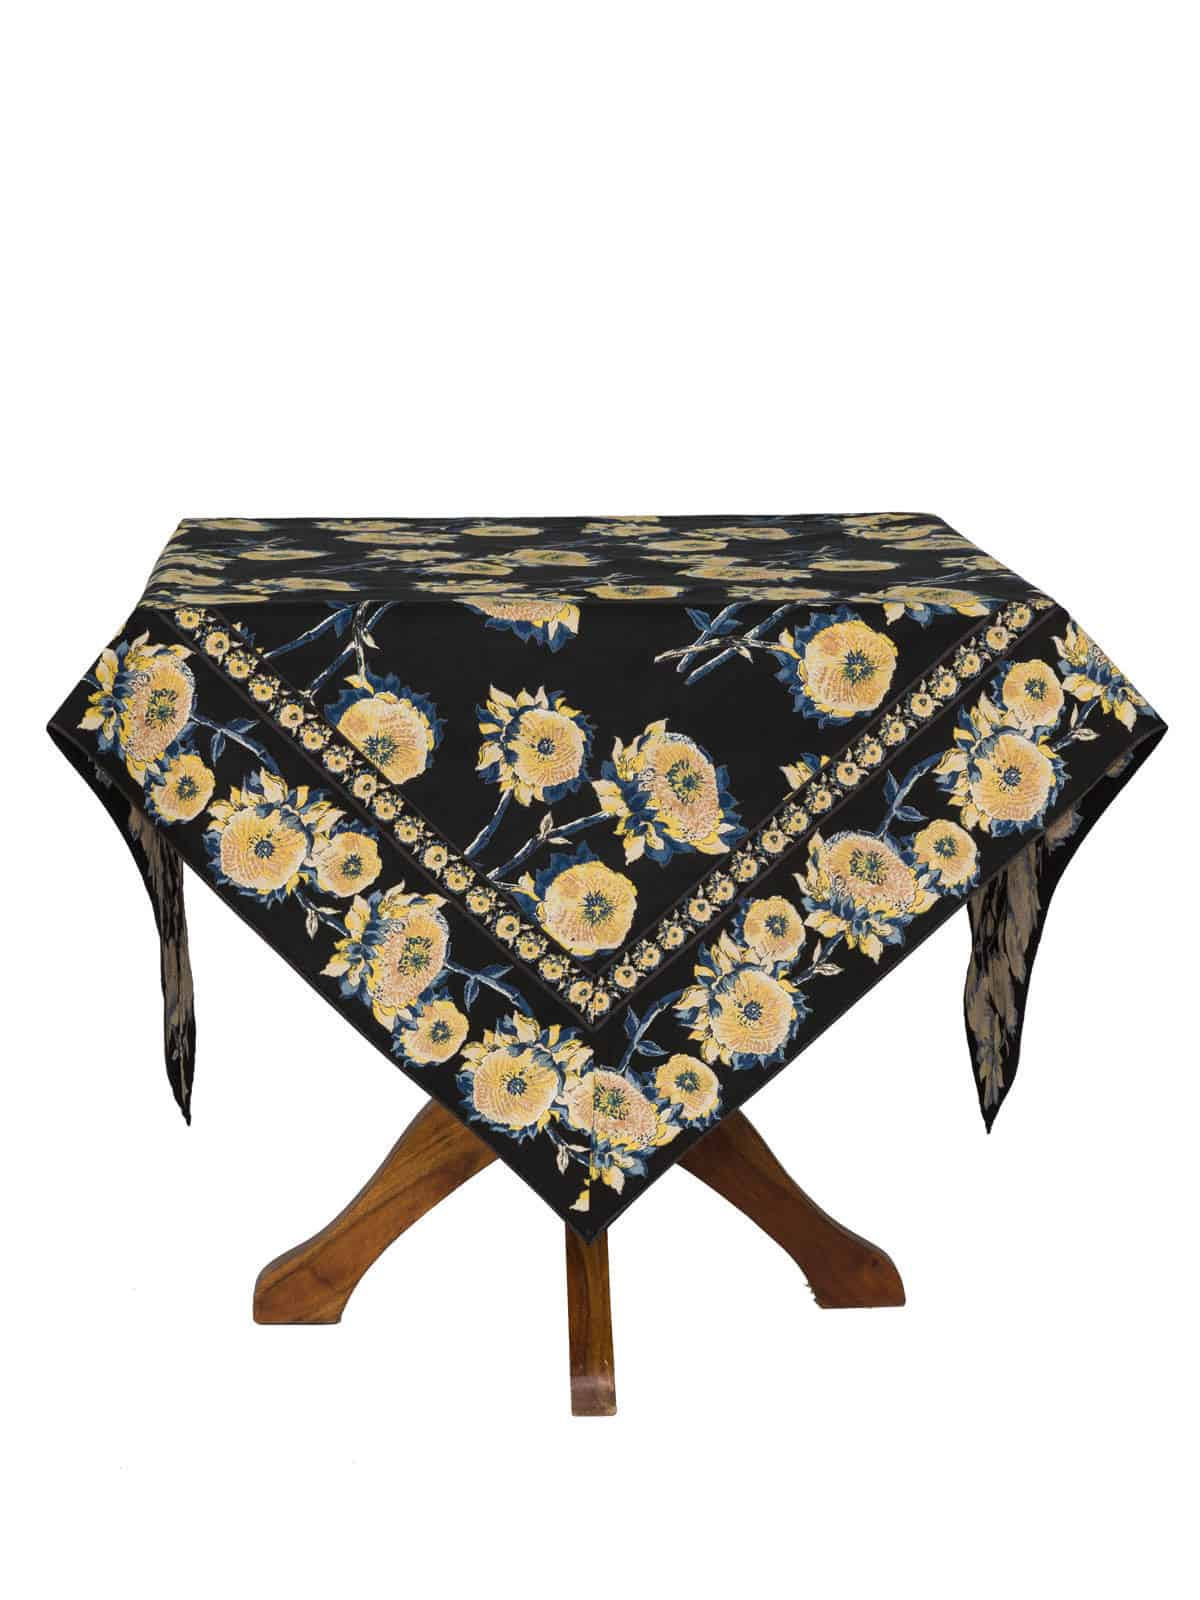 April Cornell Tablecloth Sun Follower 36x36 Black